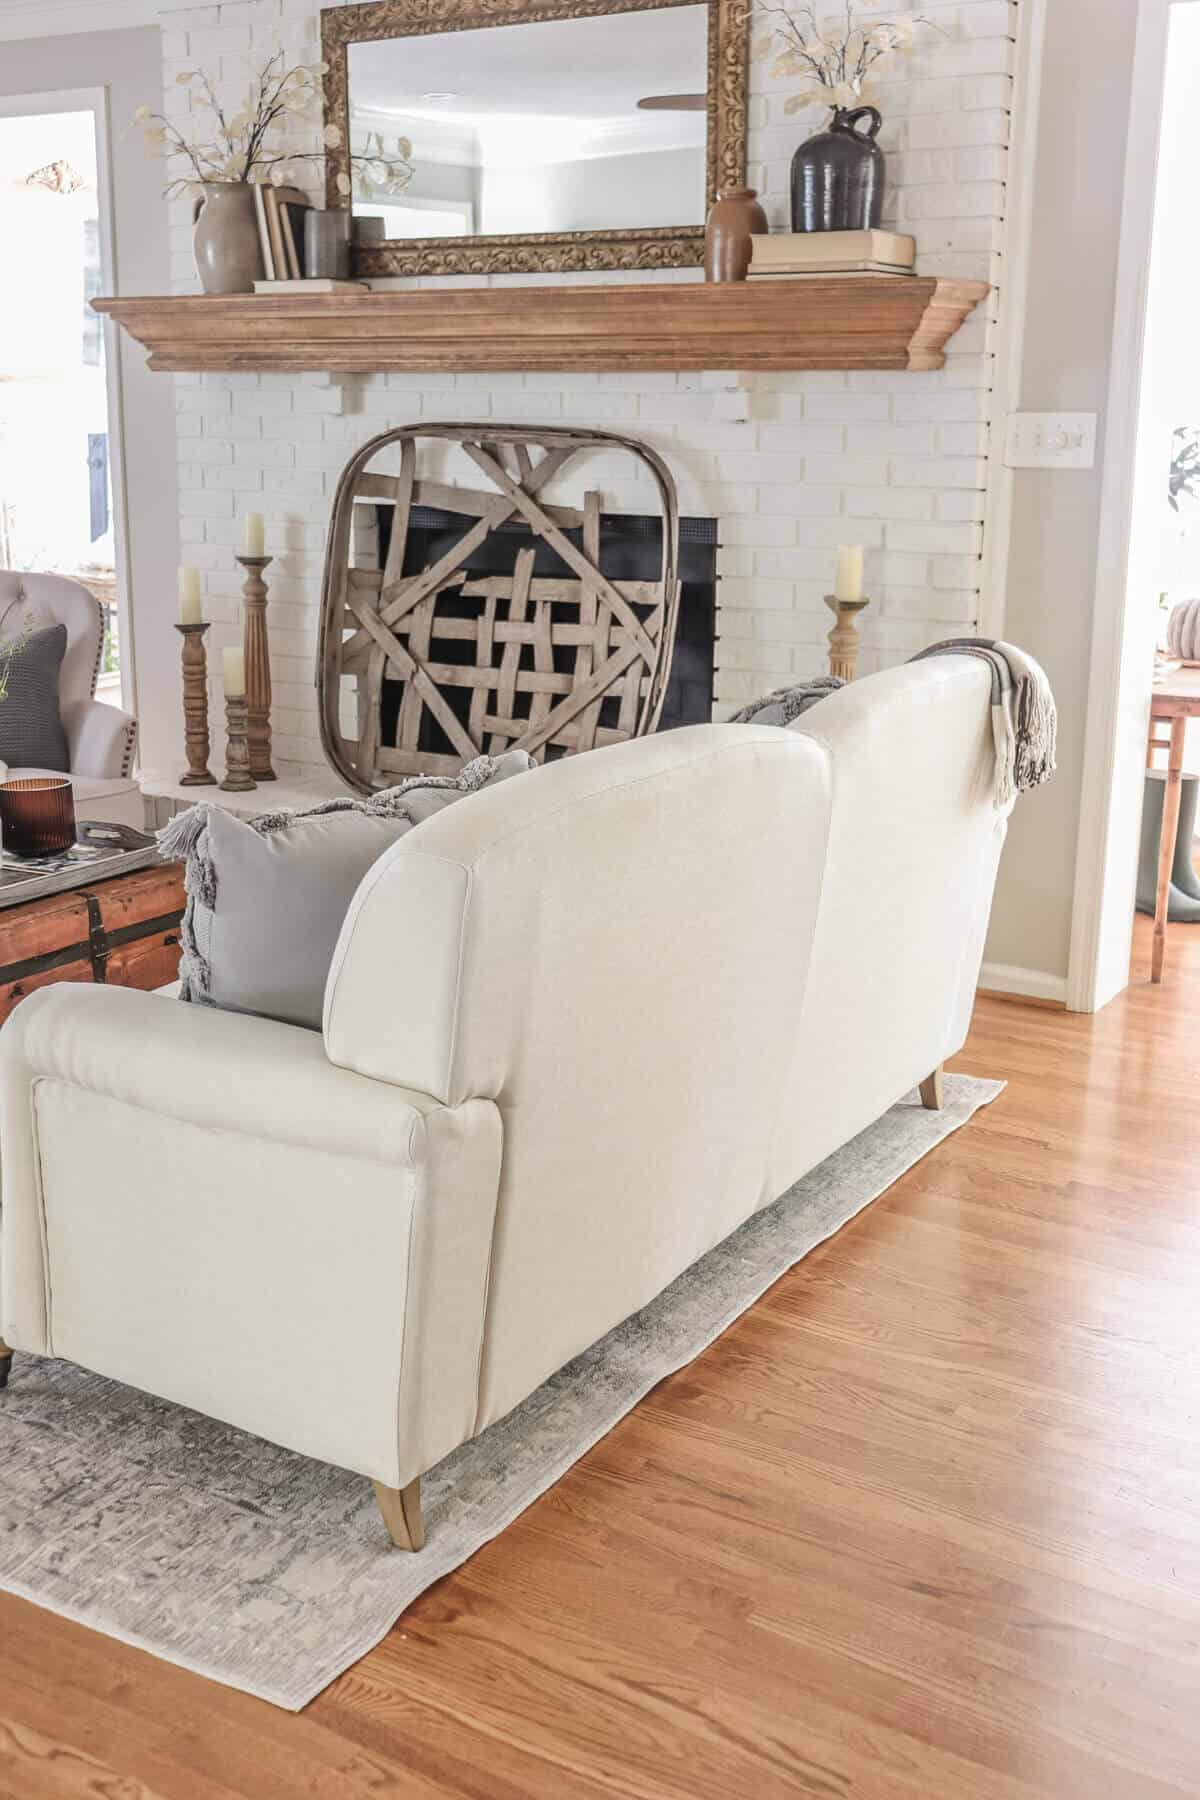 back of couch with curved back